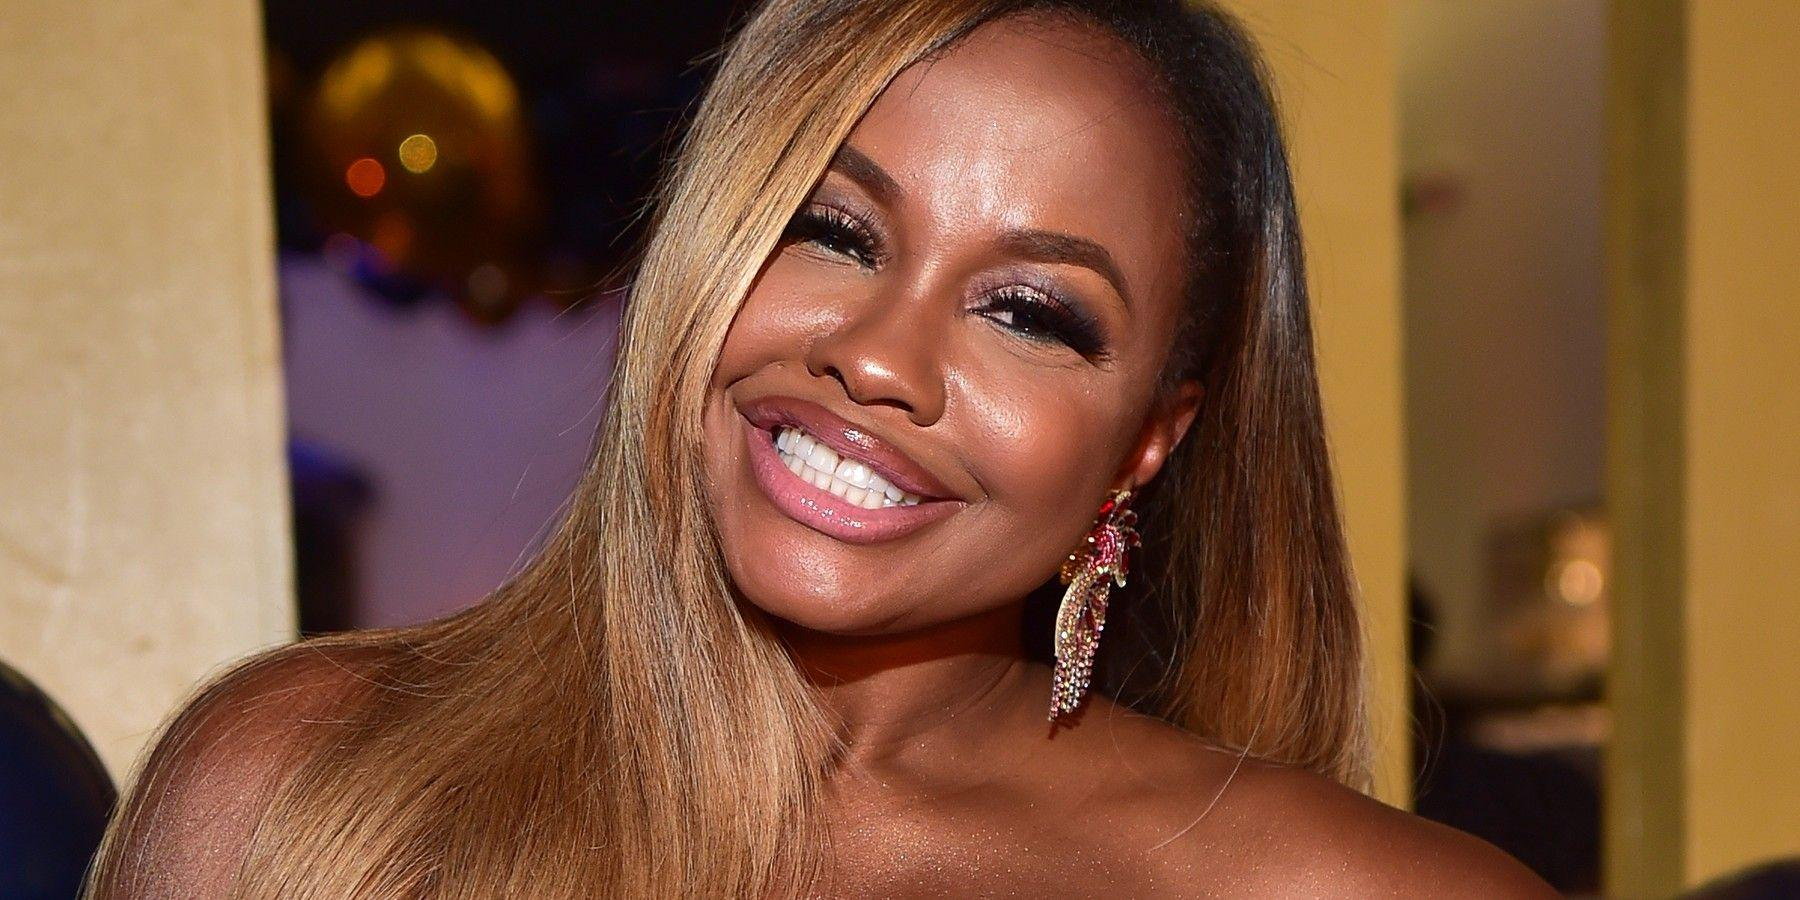 Phaedra Parks Celebrates Quincy's Birthday - Check Out The Photo That She Shared On Her Social Media Account